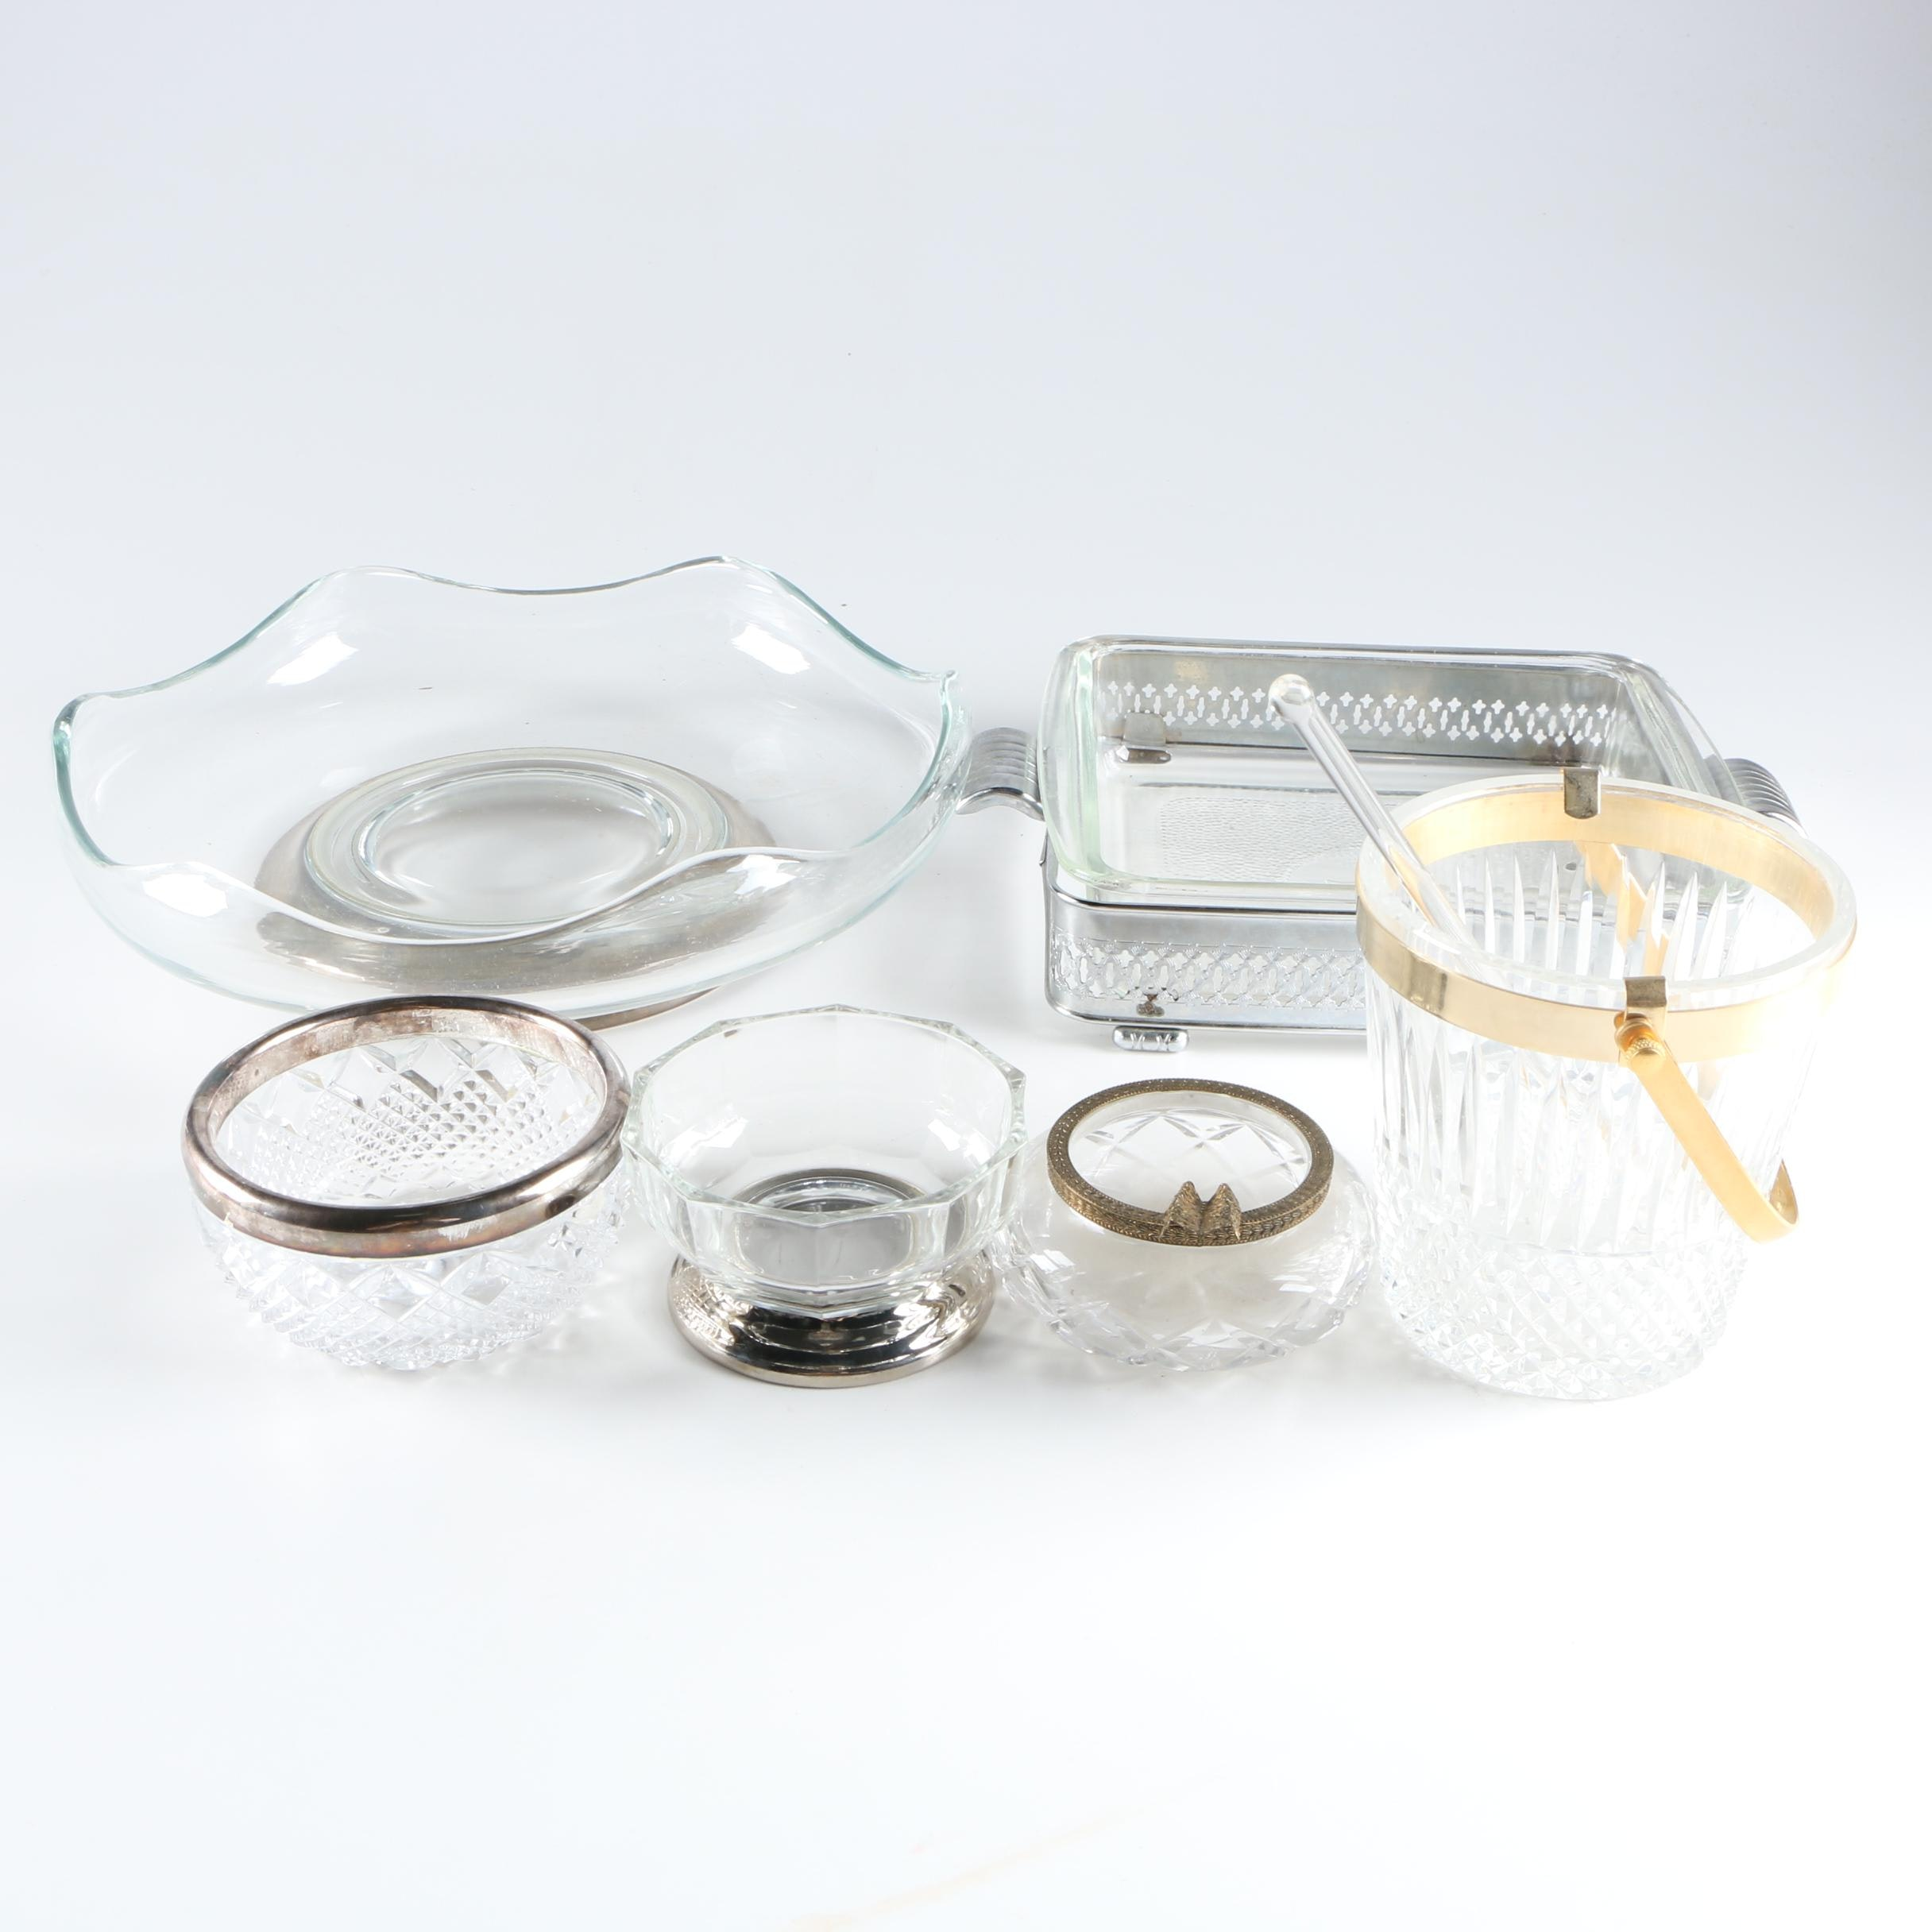 Glass and Metalware Décor with Silver Plate